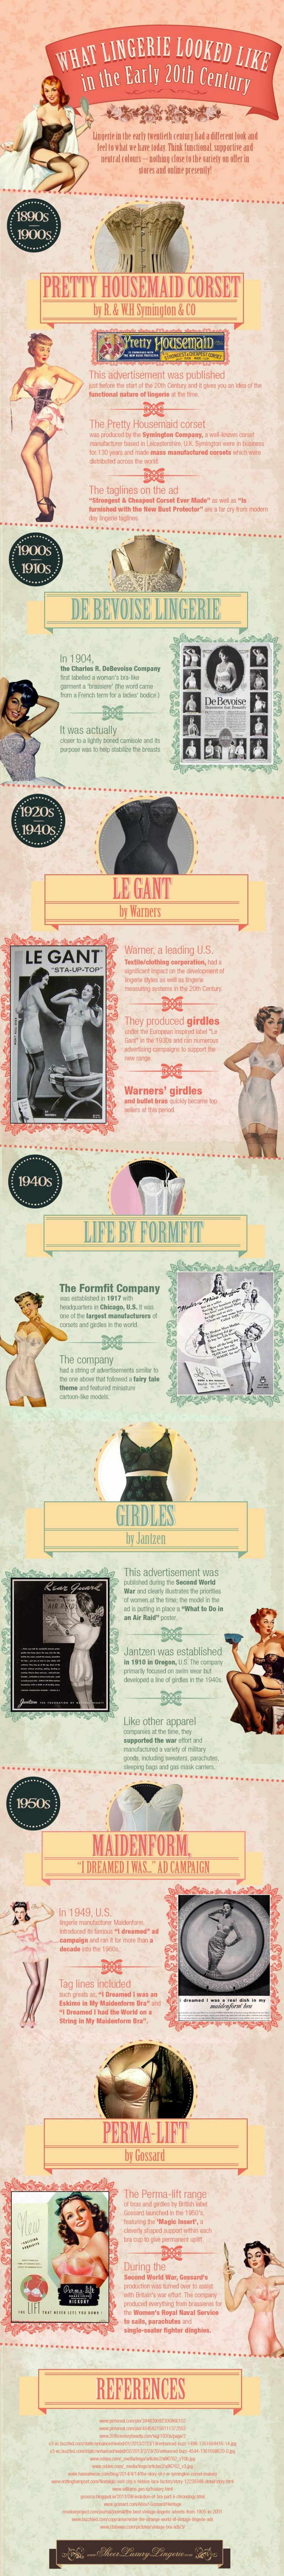 vintage-lingerie-early-20th-century-infographic